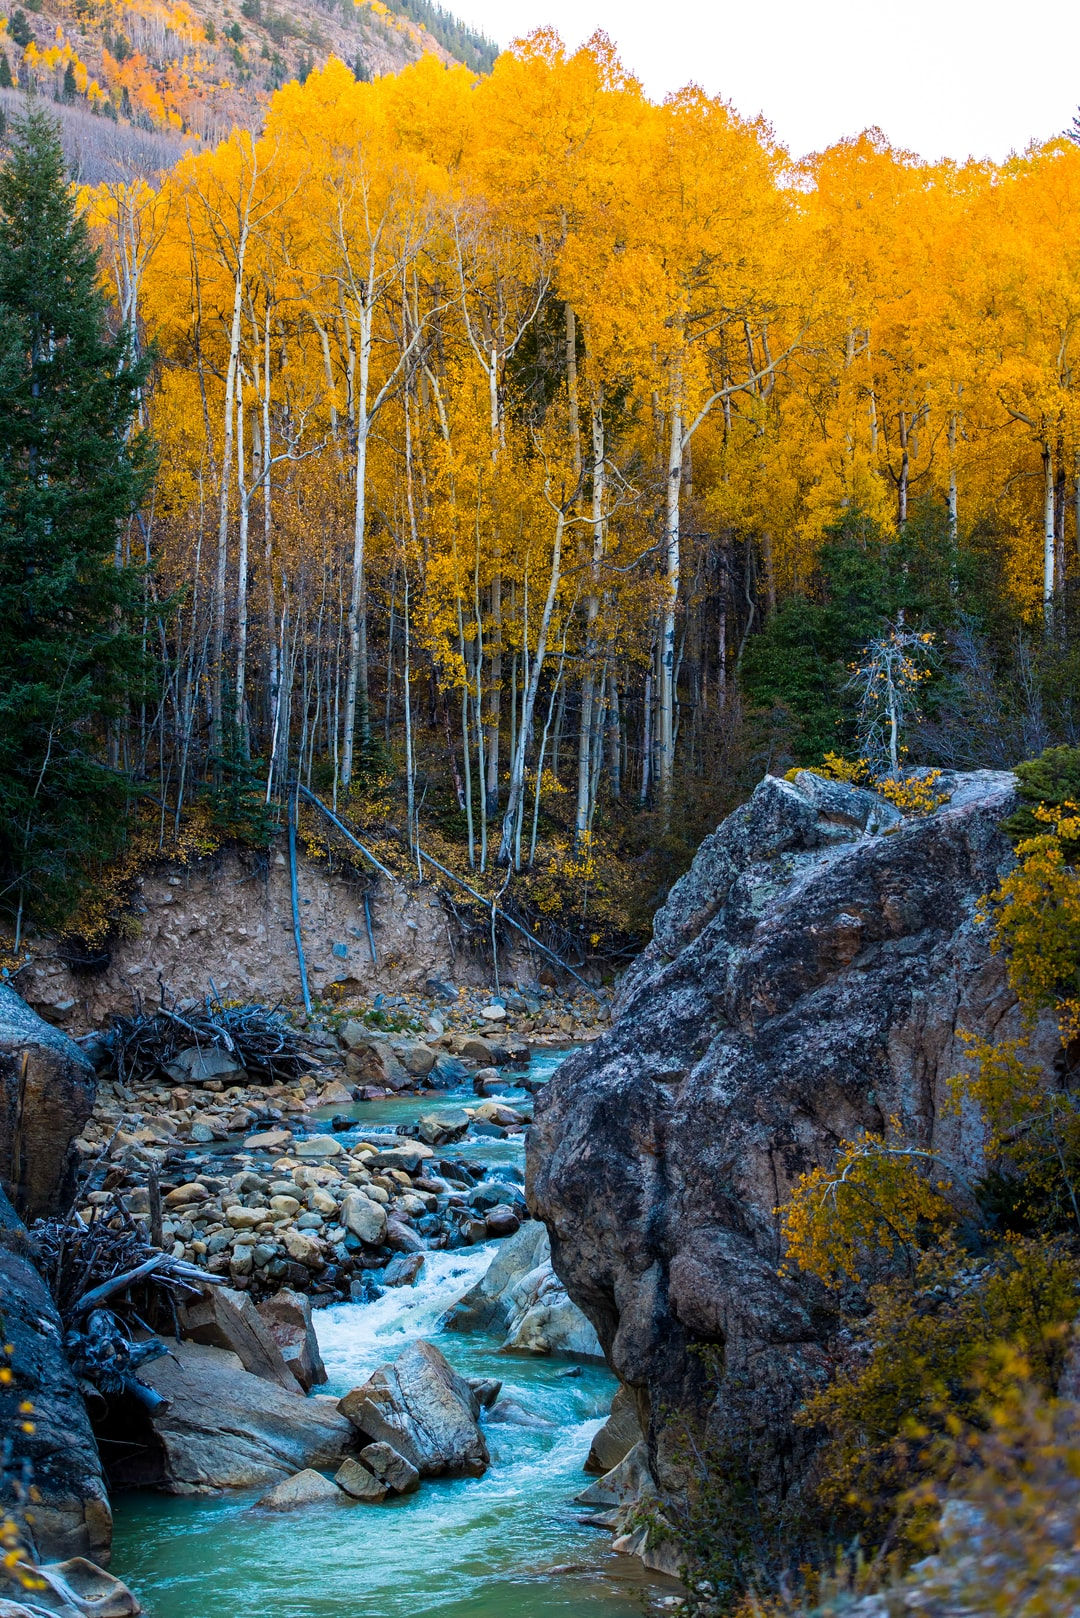 Rock tree fall and autumn hd photo by nathan anderson nathananderson on unsplash - Tree images free download ...